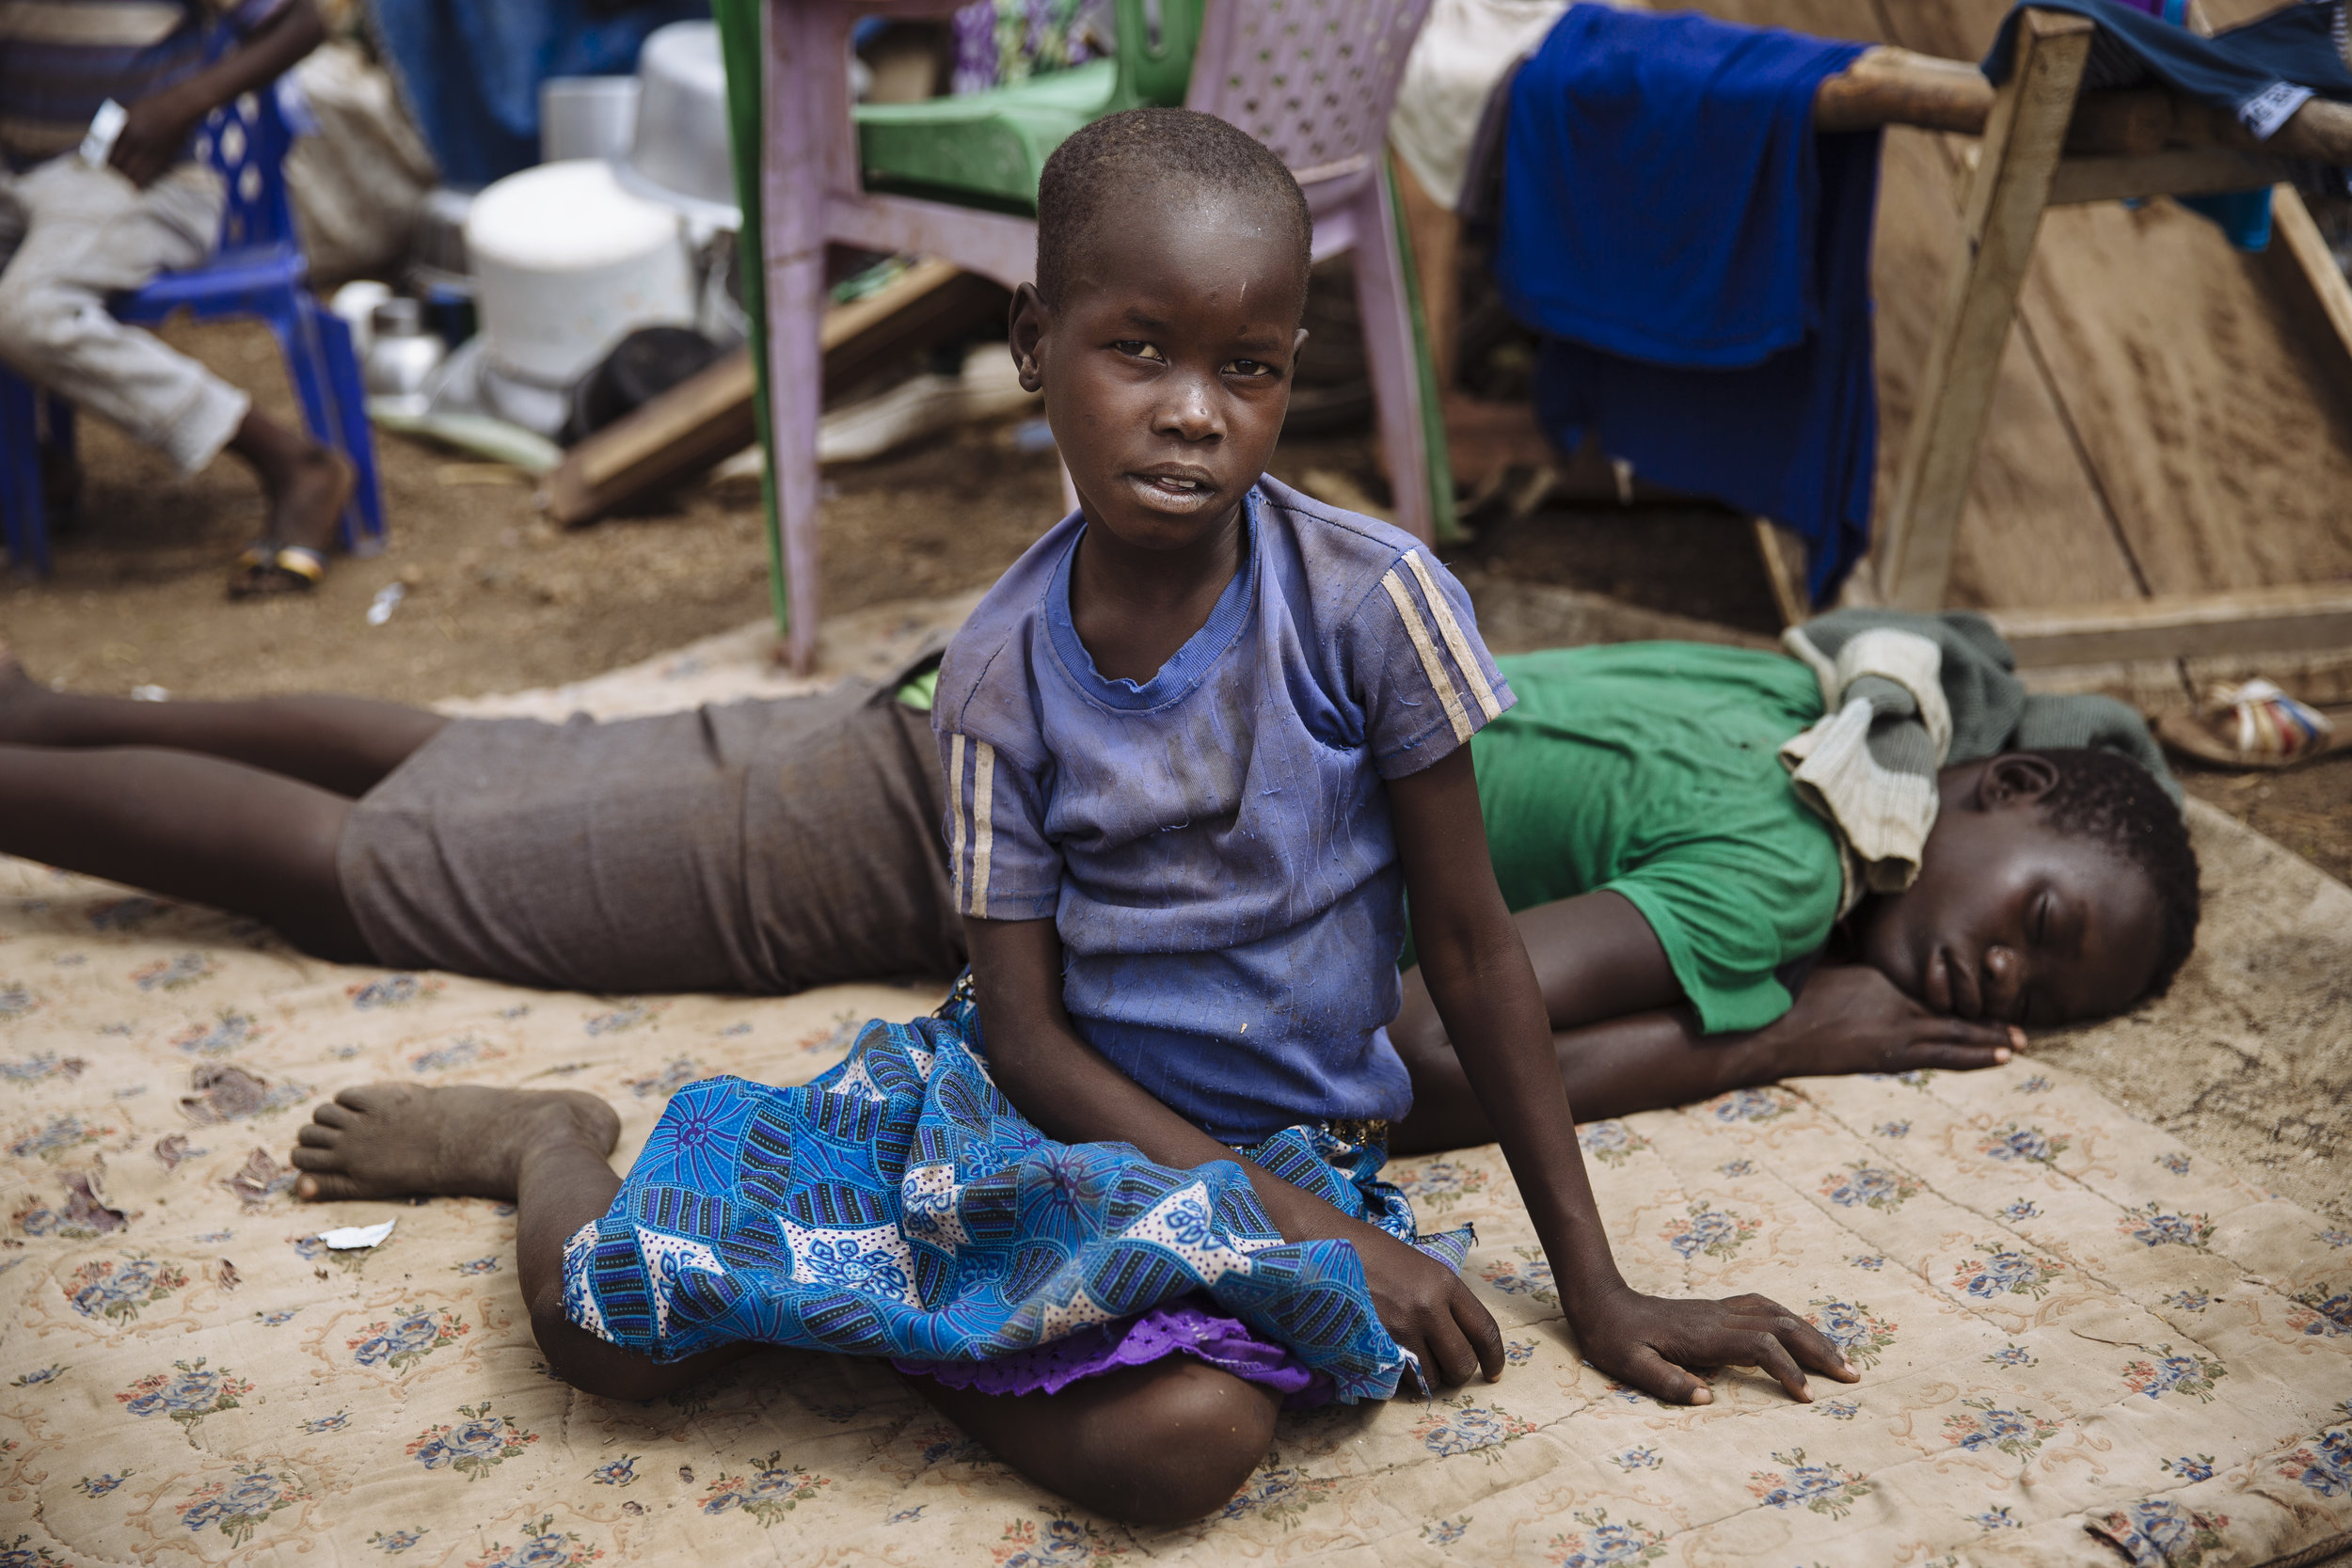 South Sudanese refugees rest on mattresses placed on the ground at the Imvepi Reception Centre, Arua District, Northern Region, Uganda.